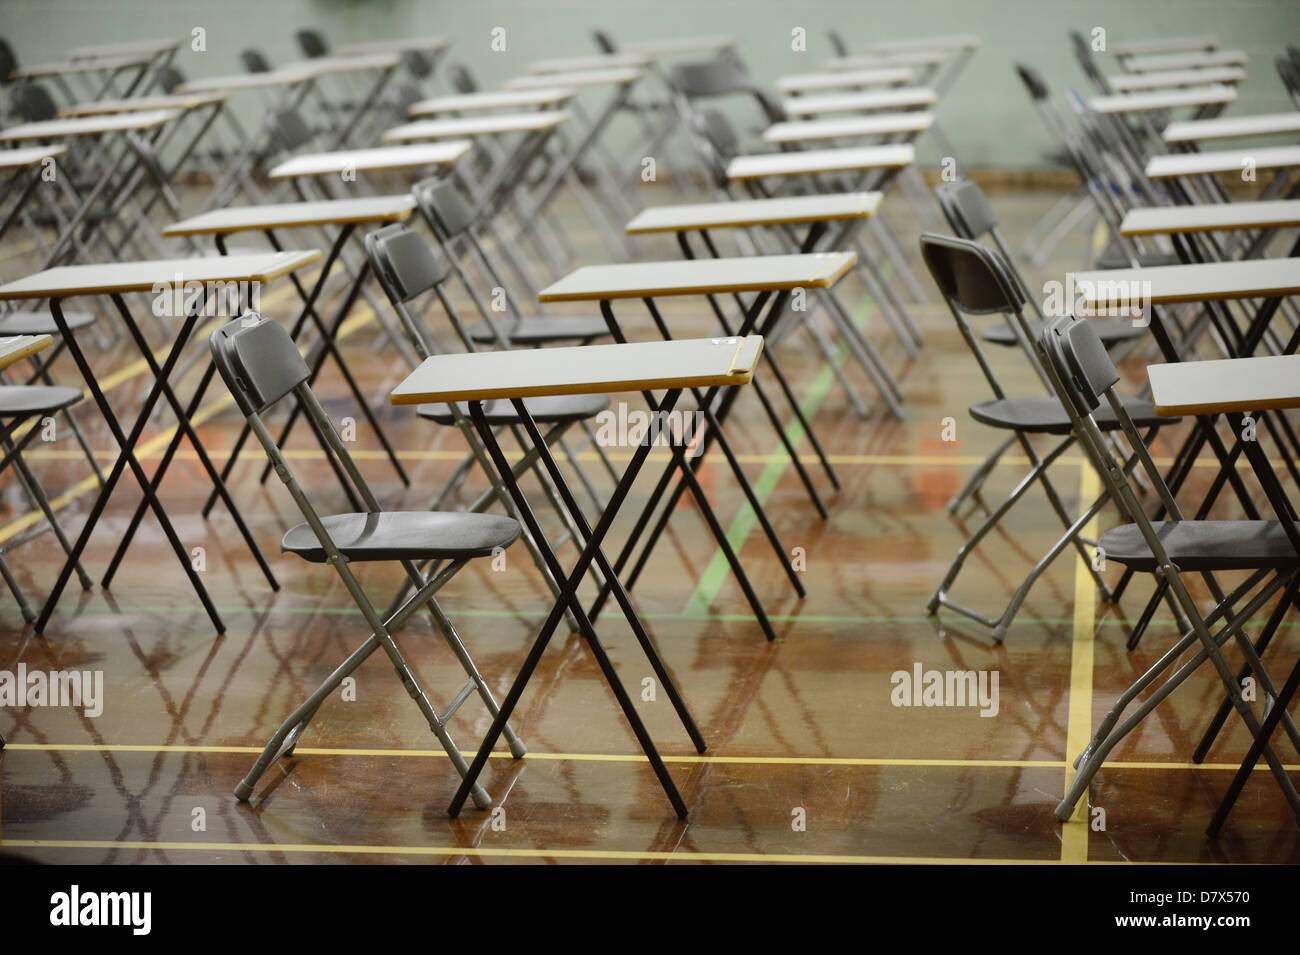 desks set out in a school hall in preparation for exam empty tables - Stock Image